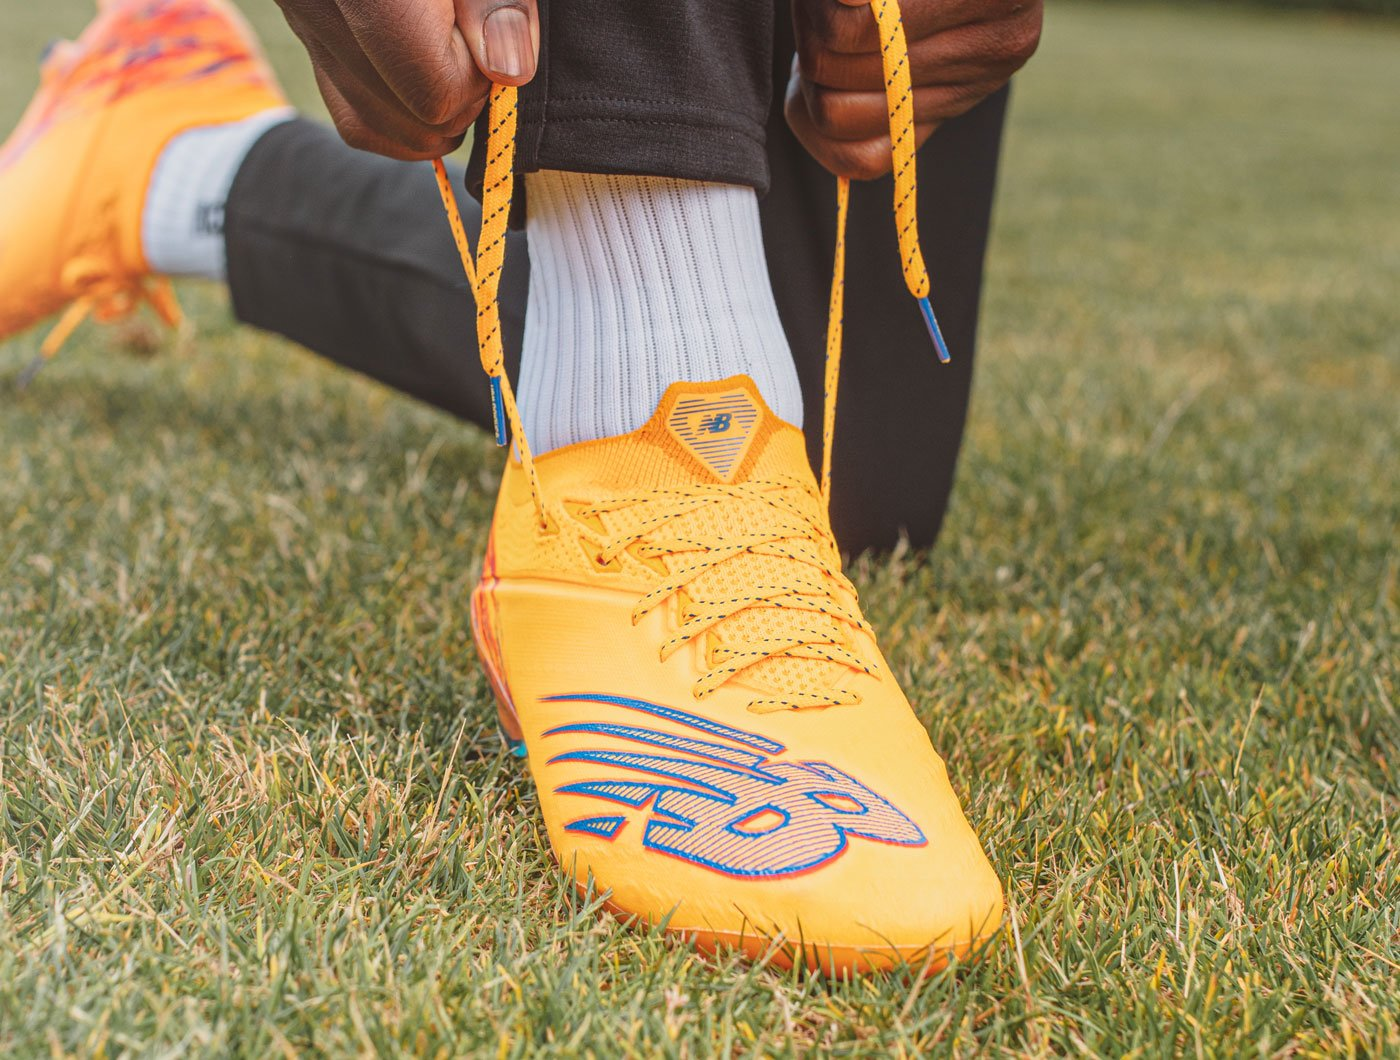 newest 72274 5cfdc Football Boots - Nike, adidas & New Balance Football Boots - Lovell ...